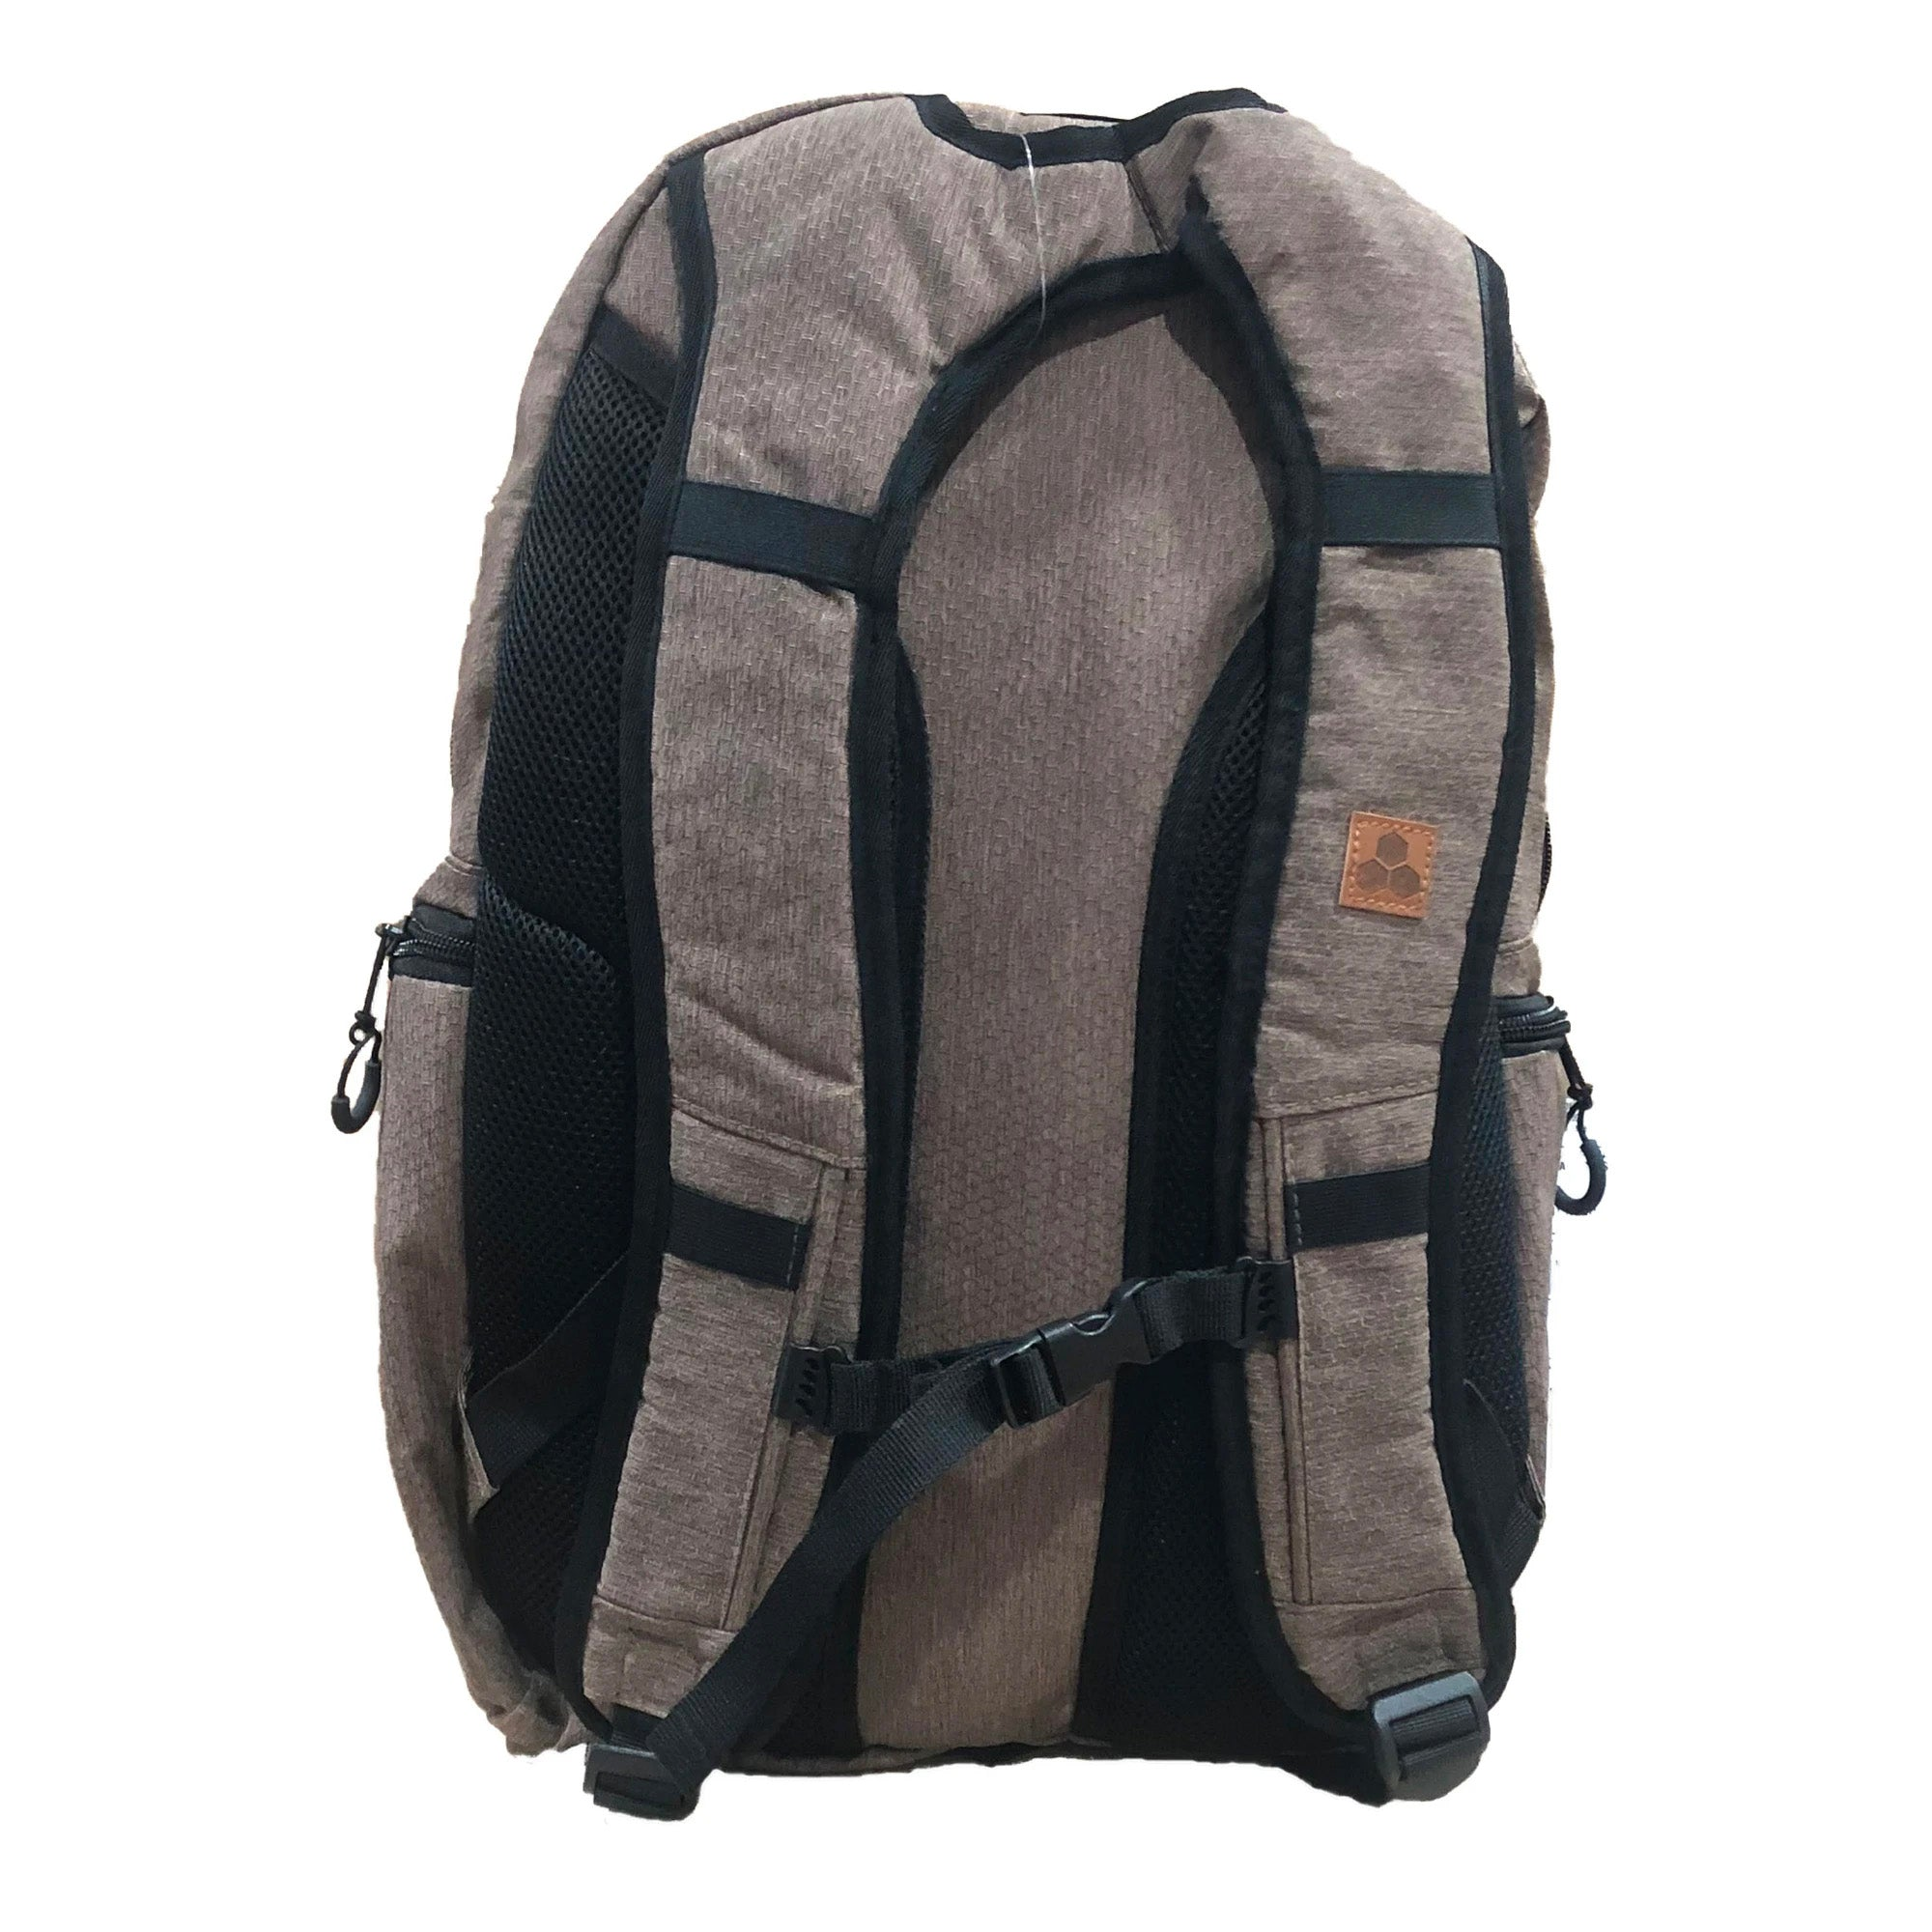 Channel Islands Bare Necessity Backpack - Brown